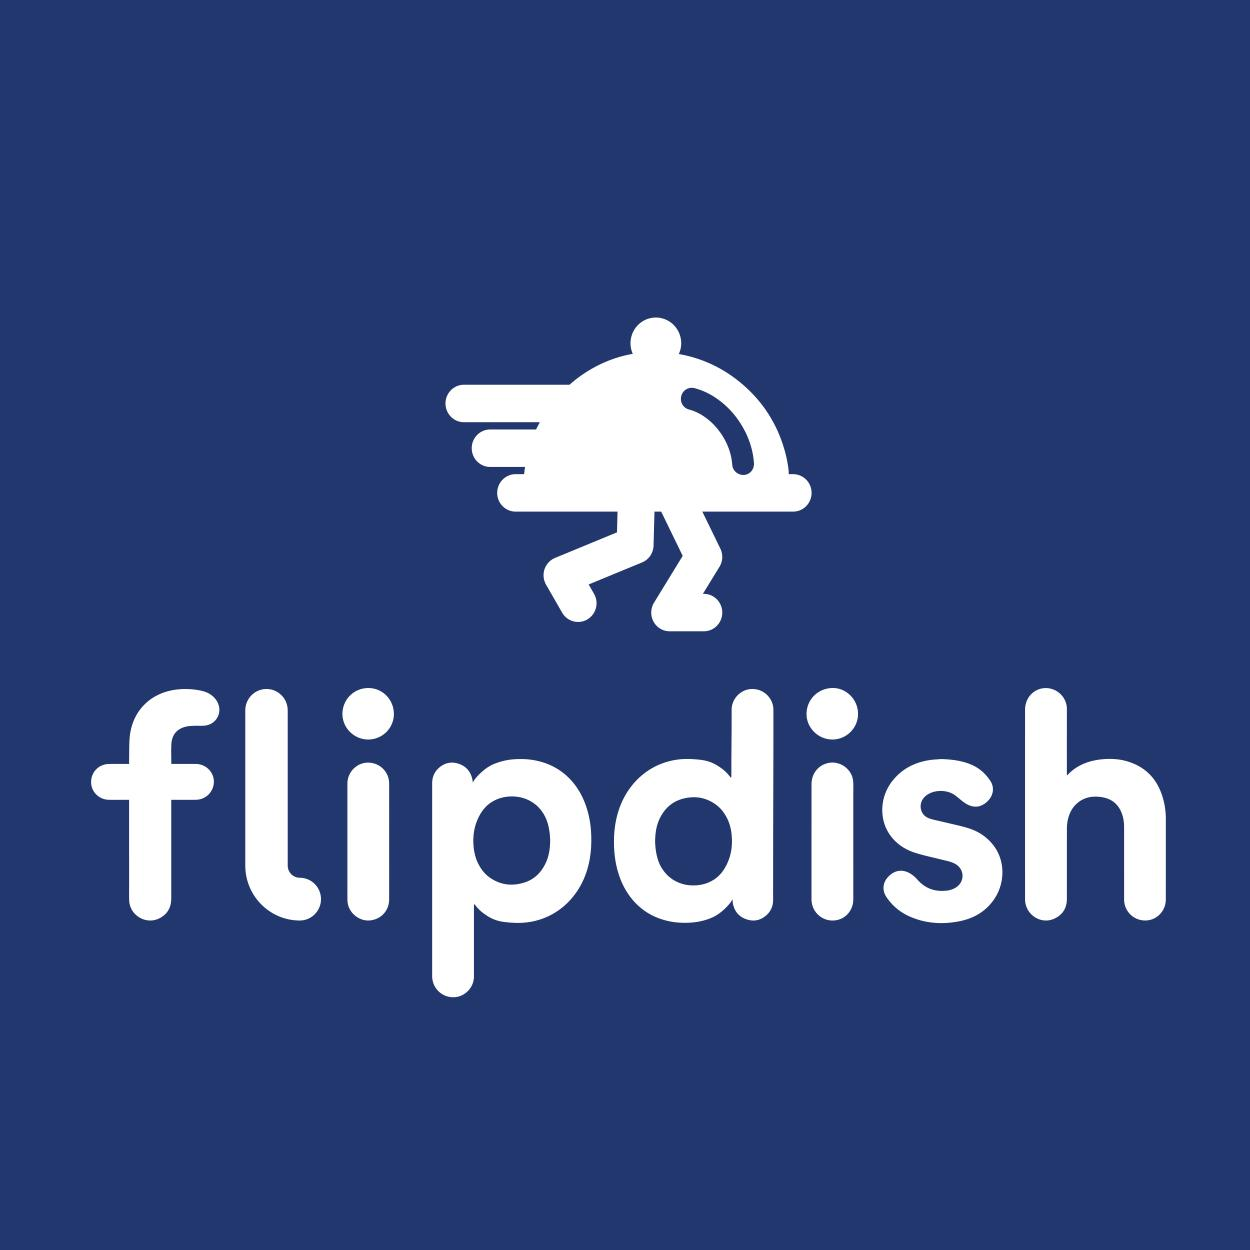 https://storage.googleapis.com/mkt-hq-website-prod-eu/be/2018/10/9759bb02-flipdish-logo.jpg